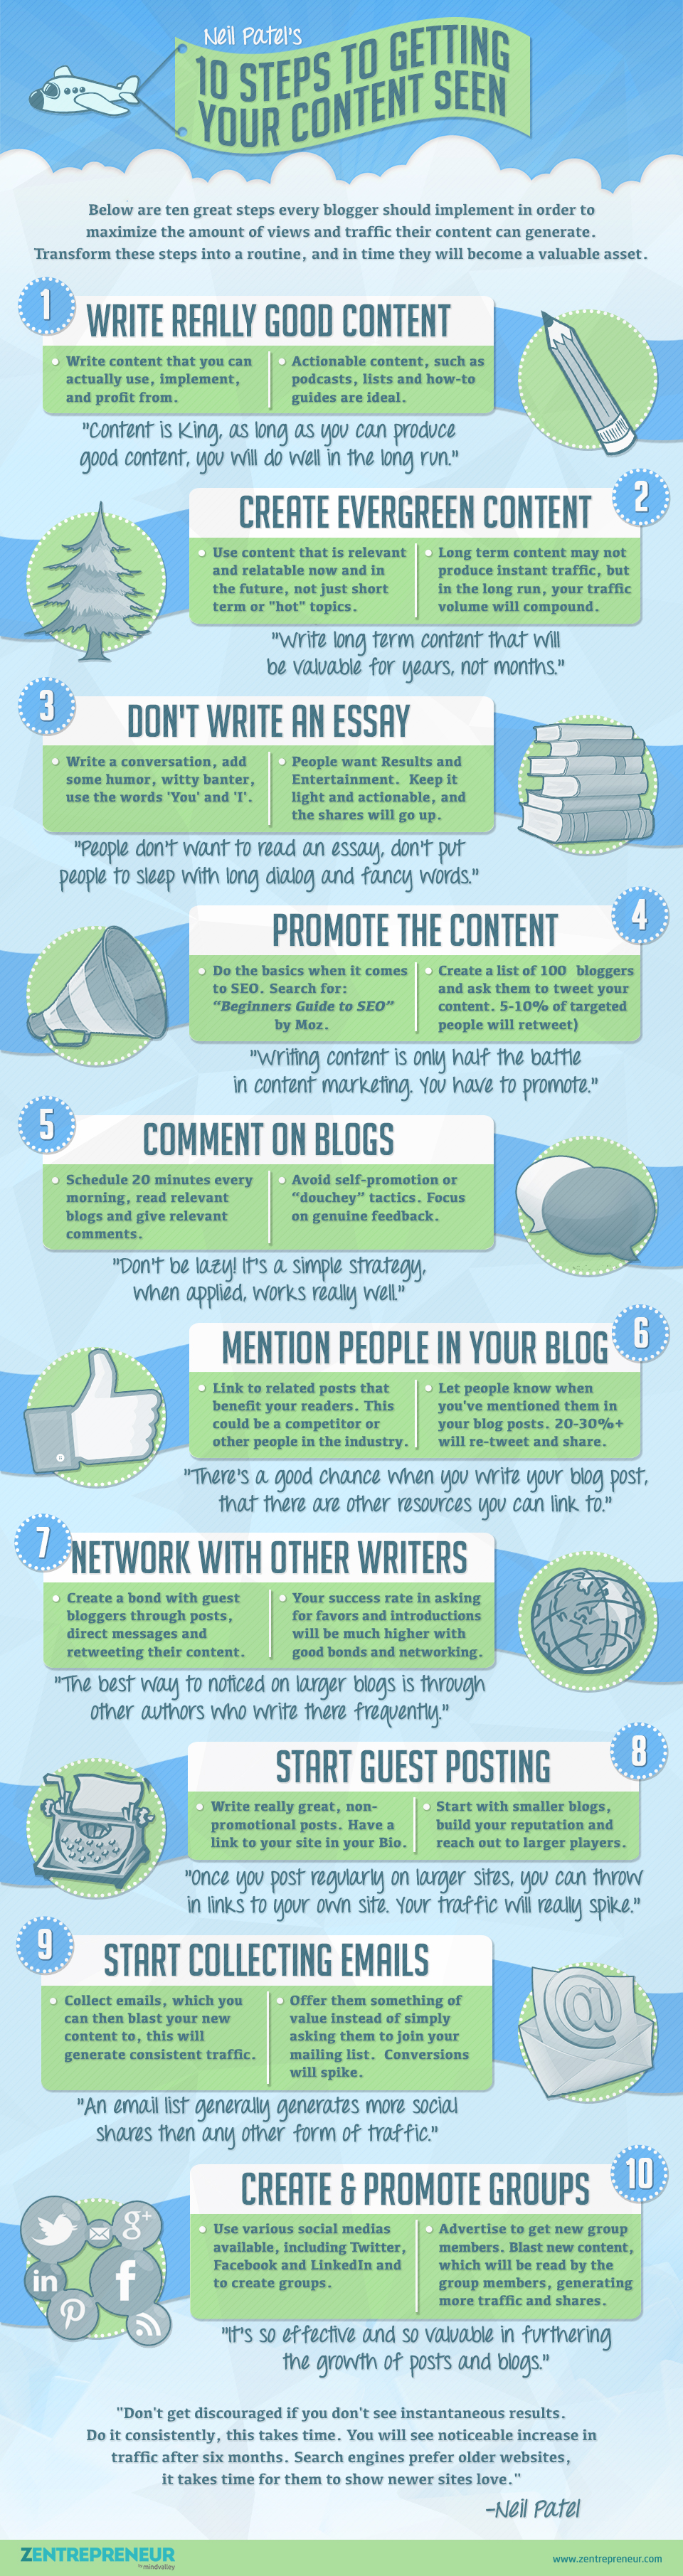 Make Your Content Stand Out Infographic